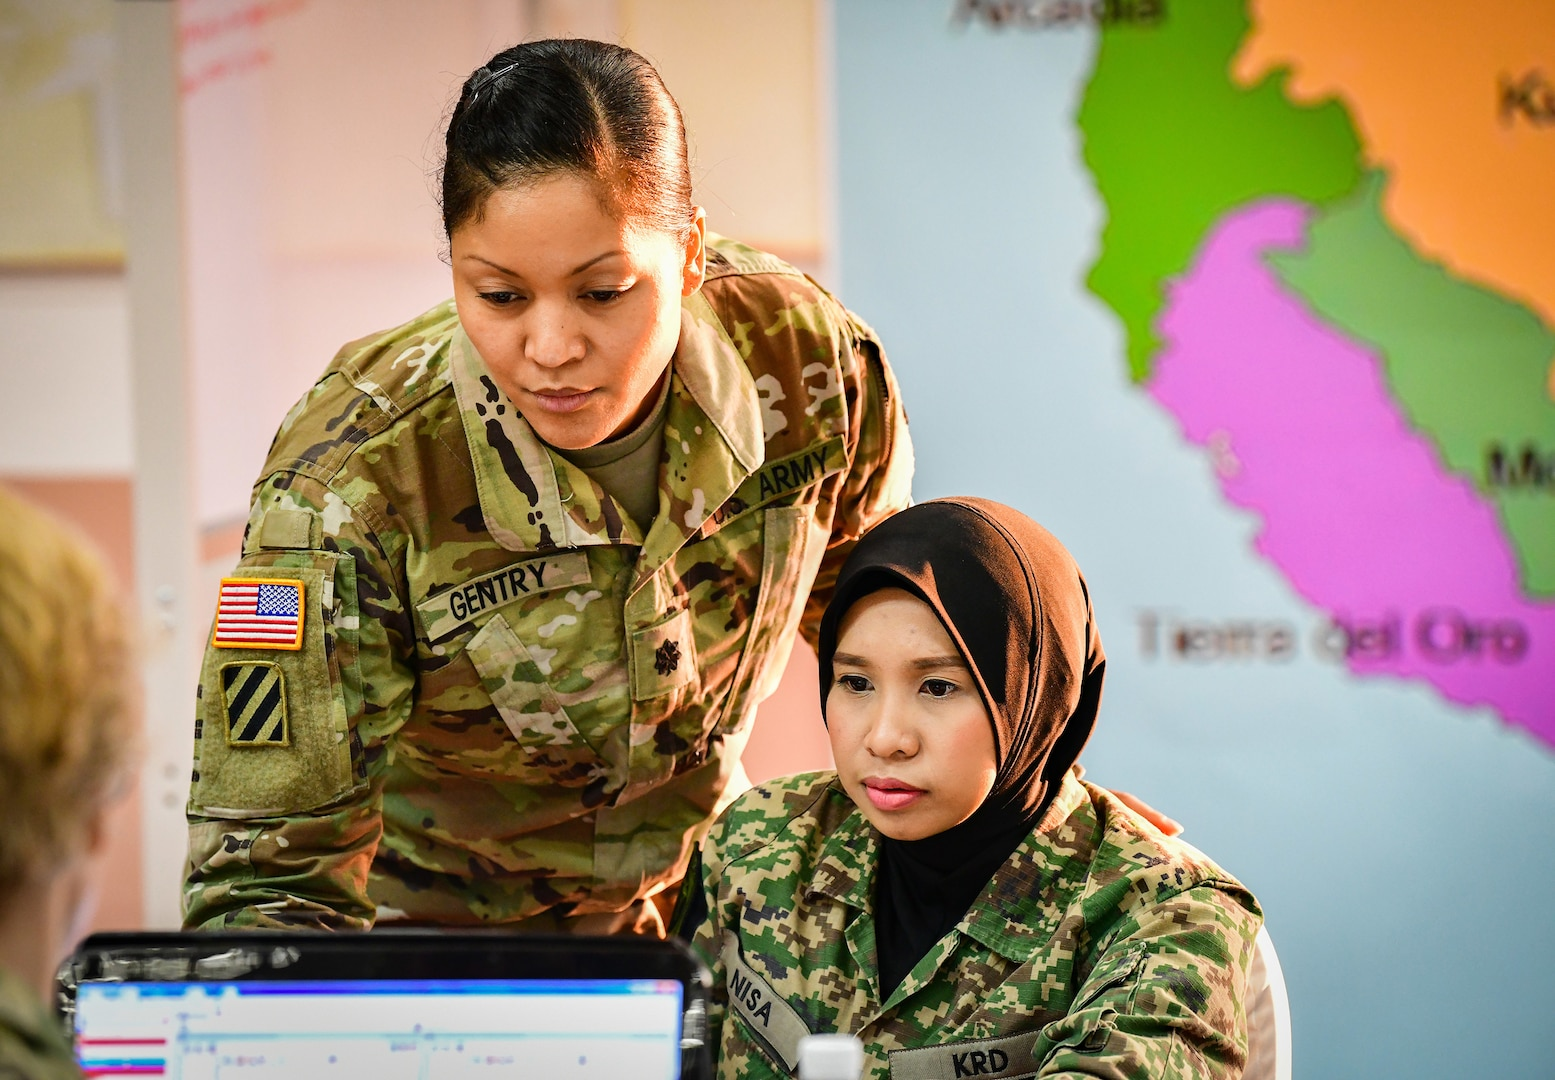 U.S. Army Lt. Col. Angela Gentry, Washington Army National Guard, discusses battle drills with her Malaysian army counterpart, Maj. Nurkhairunisa, during Exercise Bersama Warrior in Malaysia, March 10, 2019.